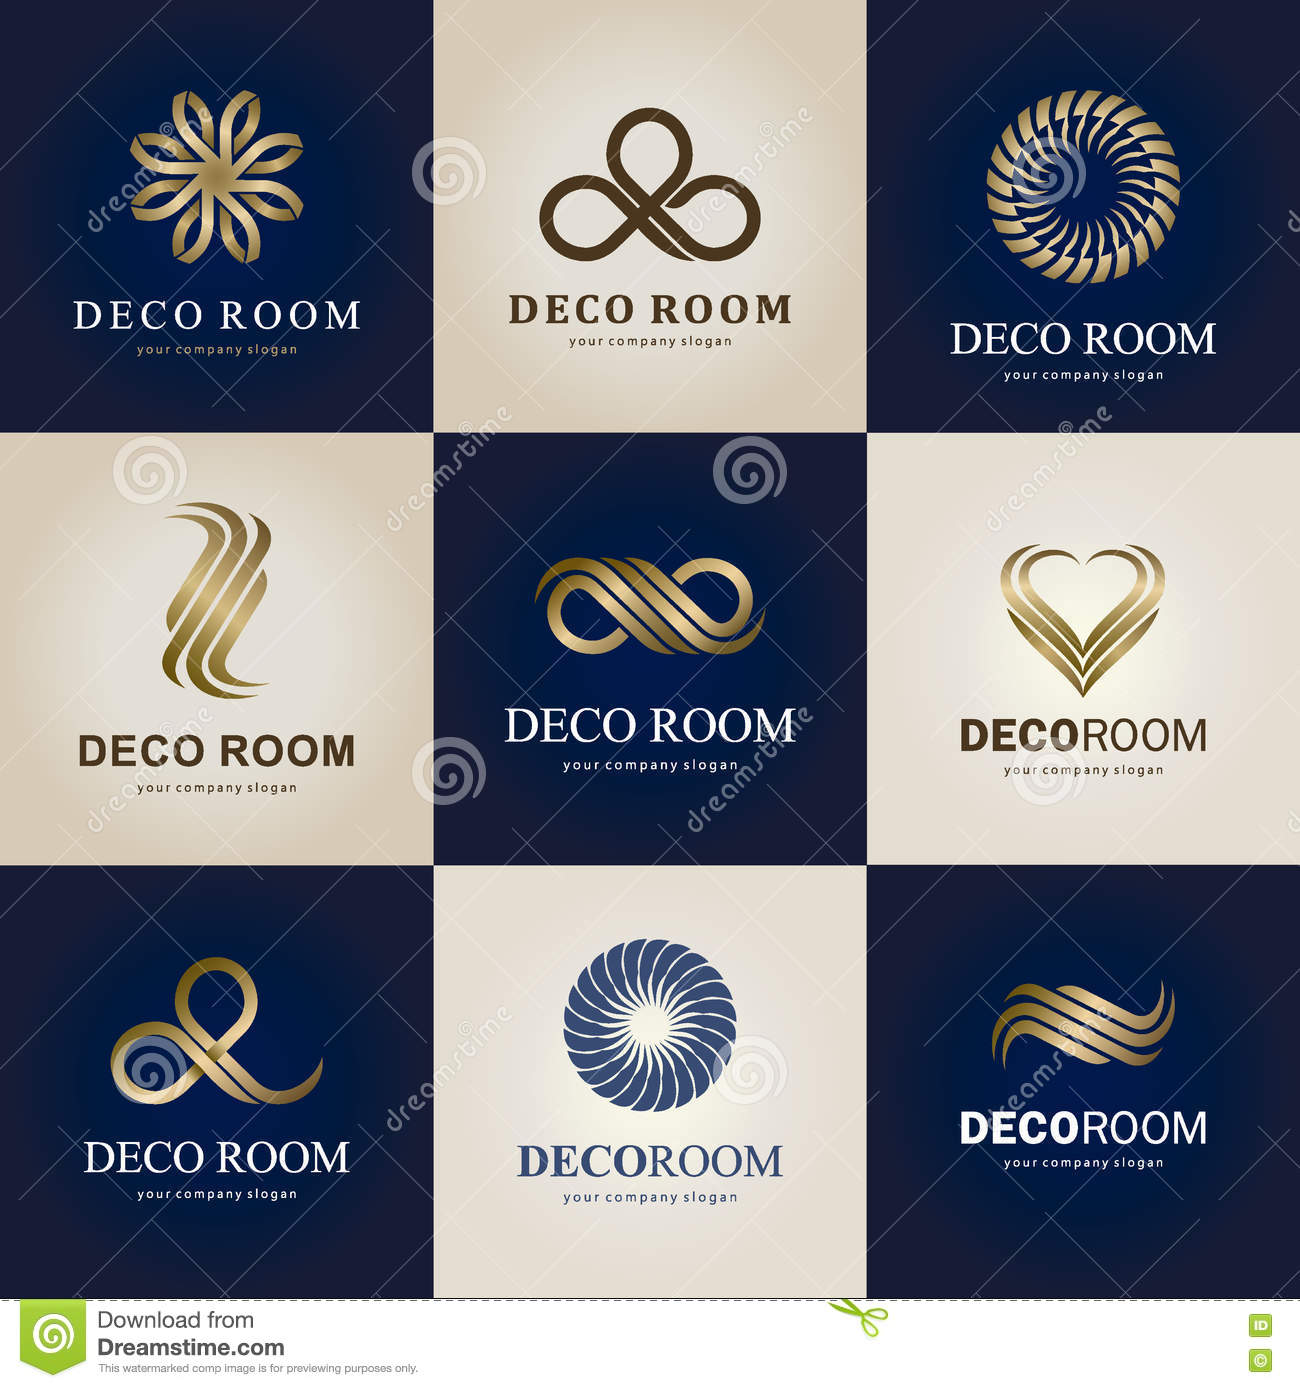 Home Decoration Collection A Collection Of Logos For Interior Decor Items And Home